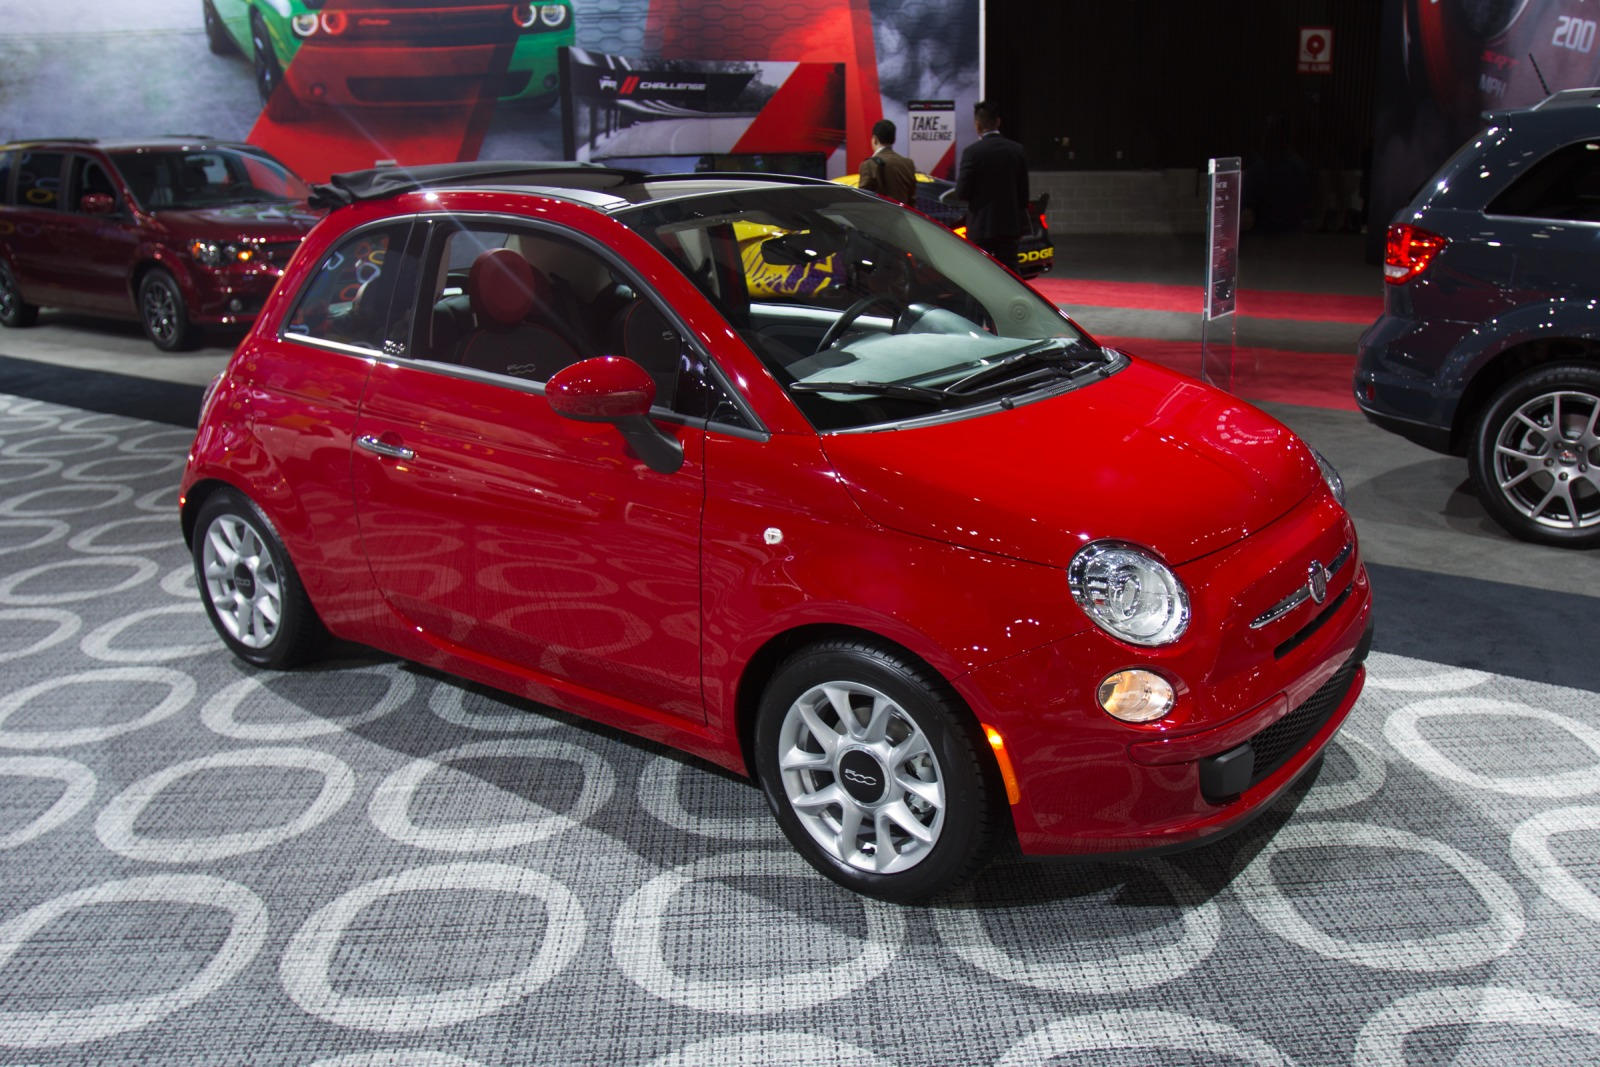 2019 Fiat 500c Review Trims Specs Price New Interior Features Exterior Design And Specifications Carbuzz